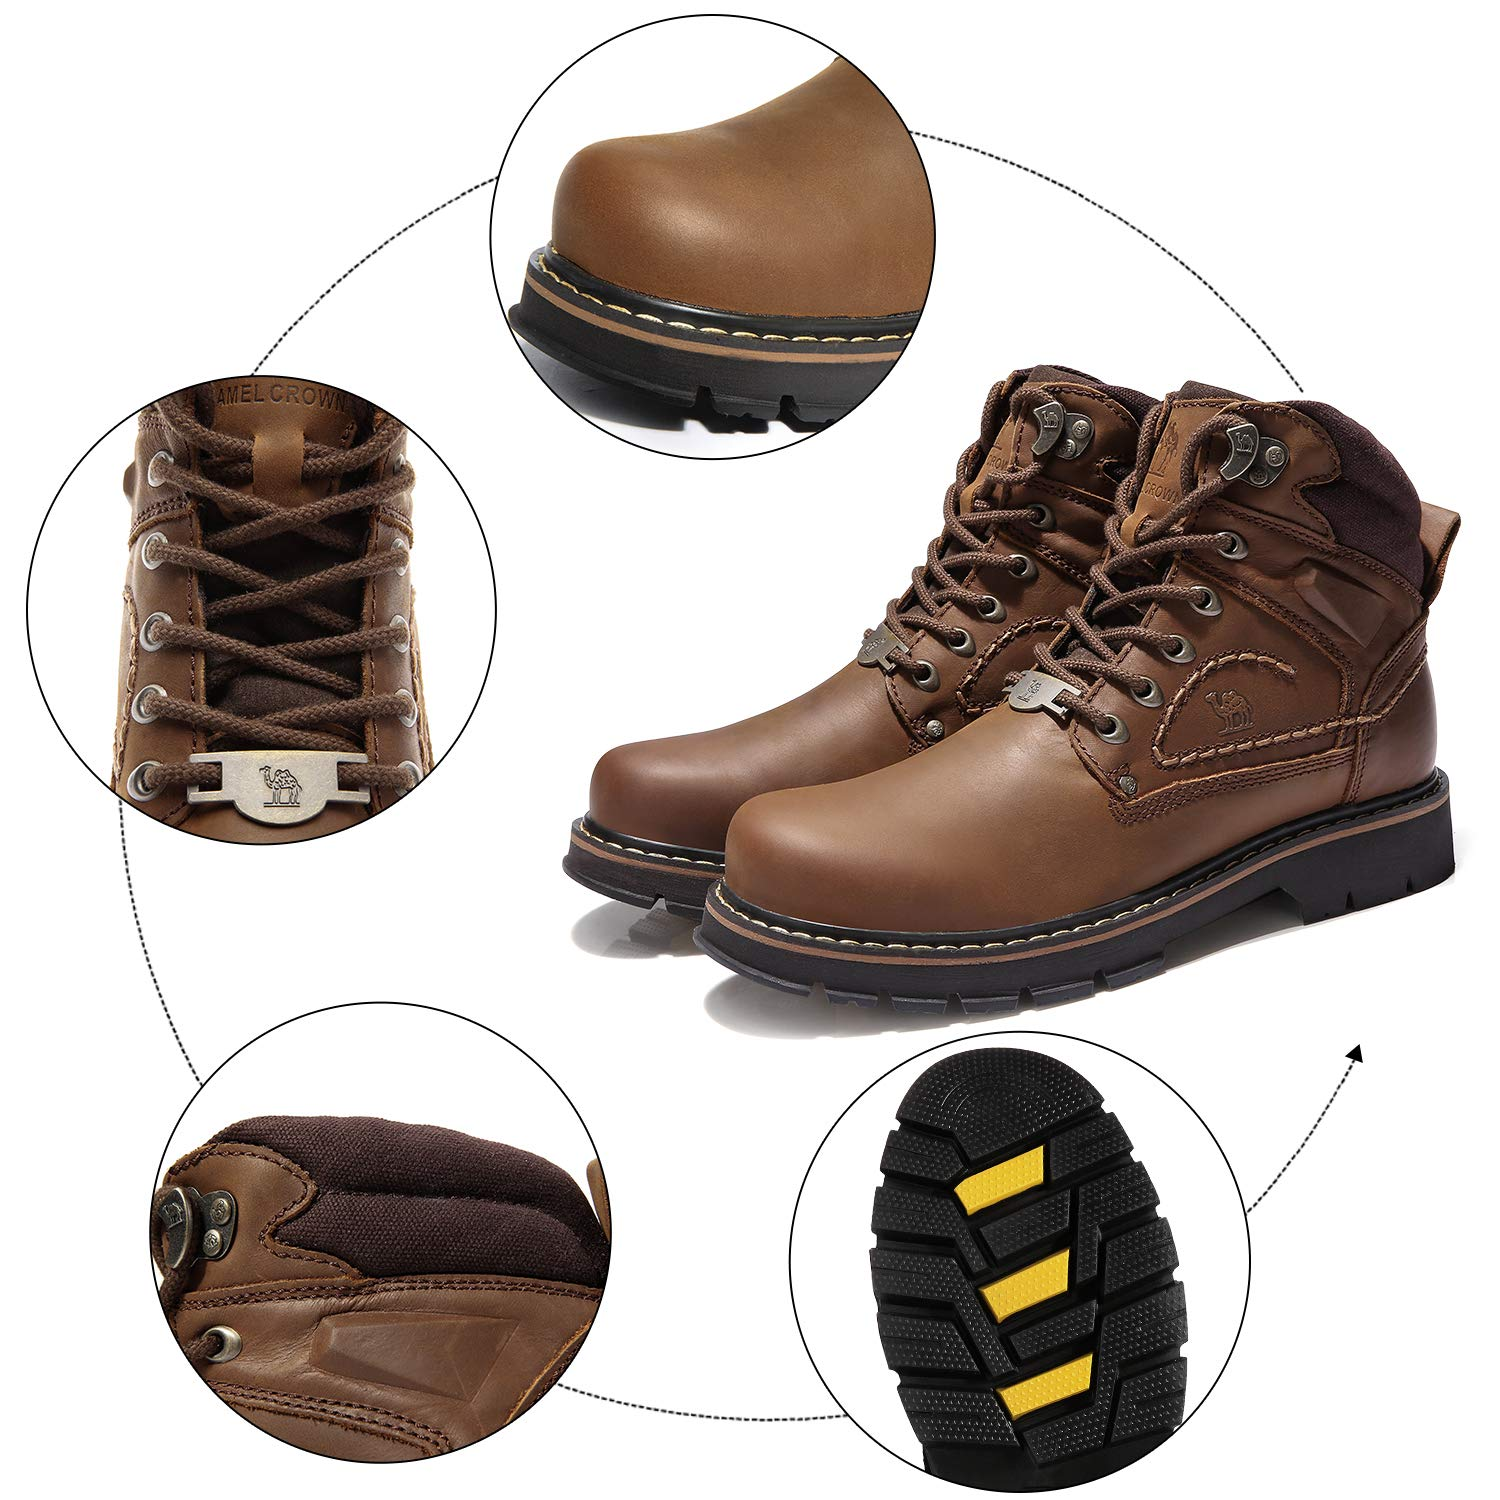 87c3d570efa CAMEL CROWN Men s Leather Boots Casual Lace up Walking Boots Rubber ...